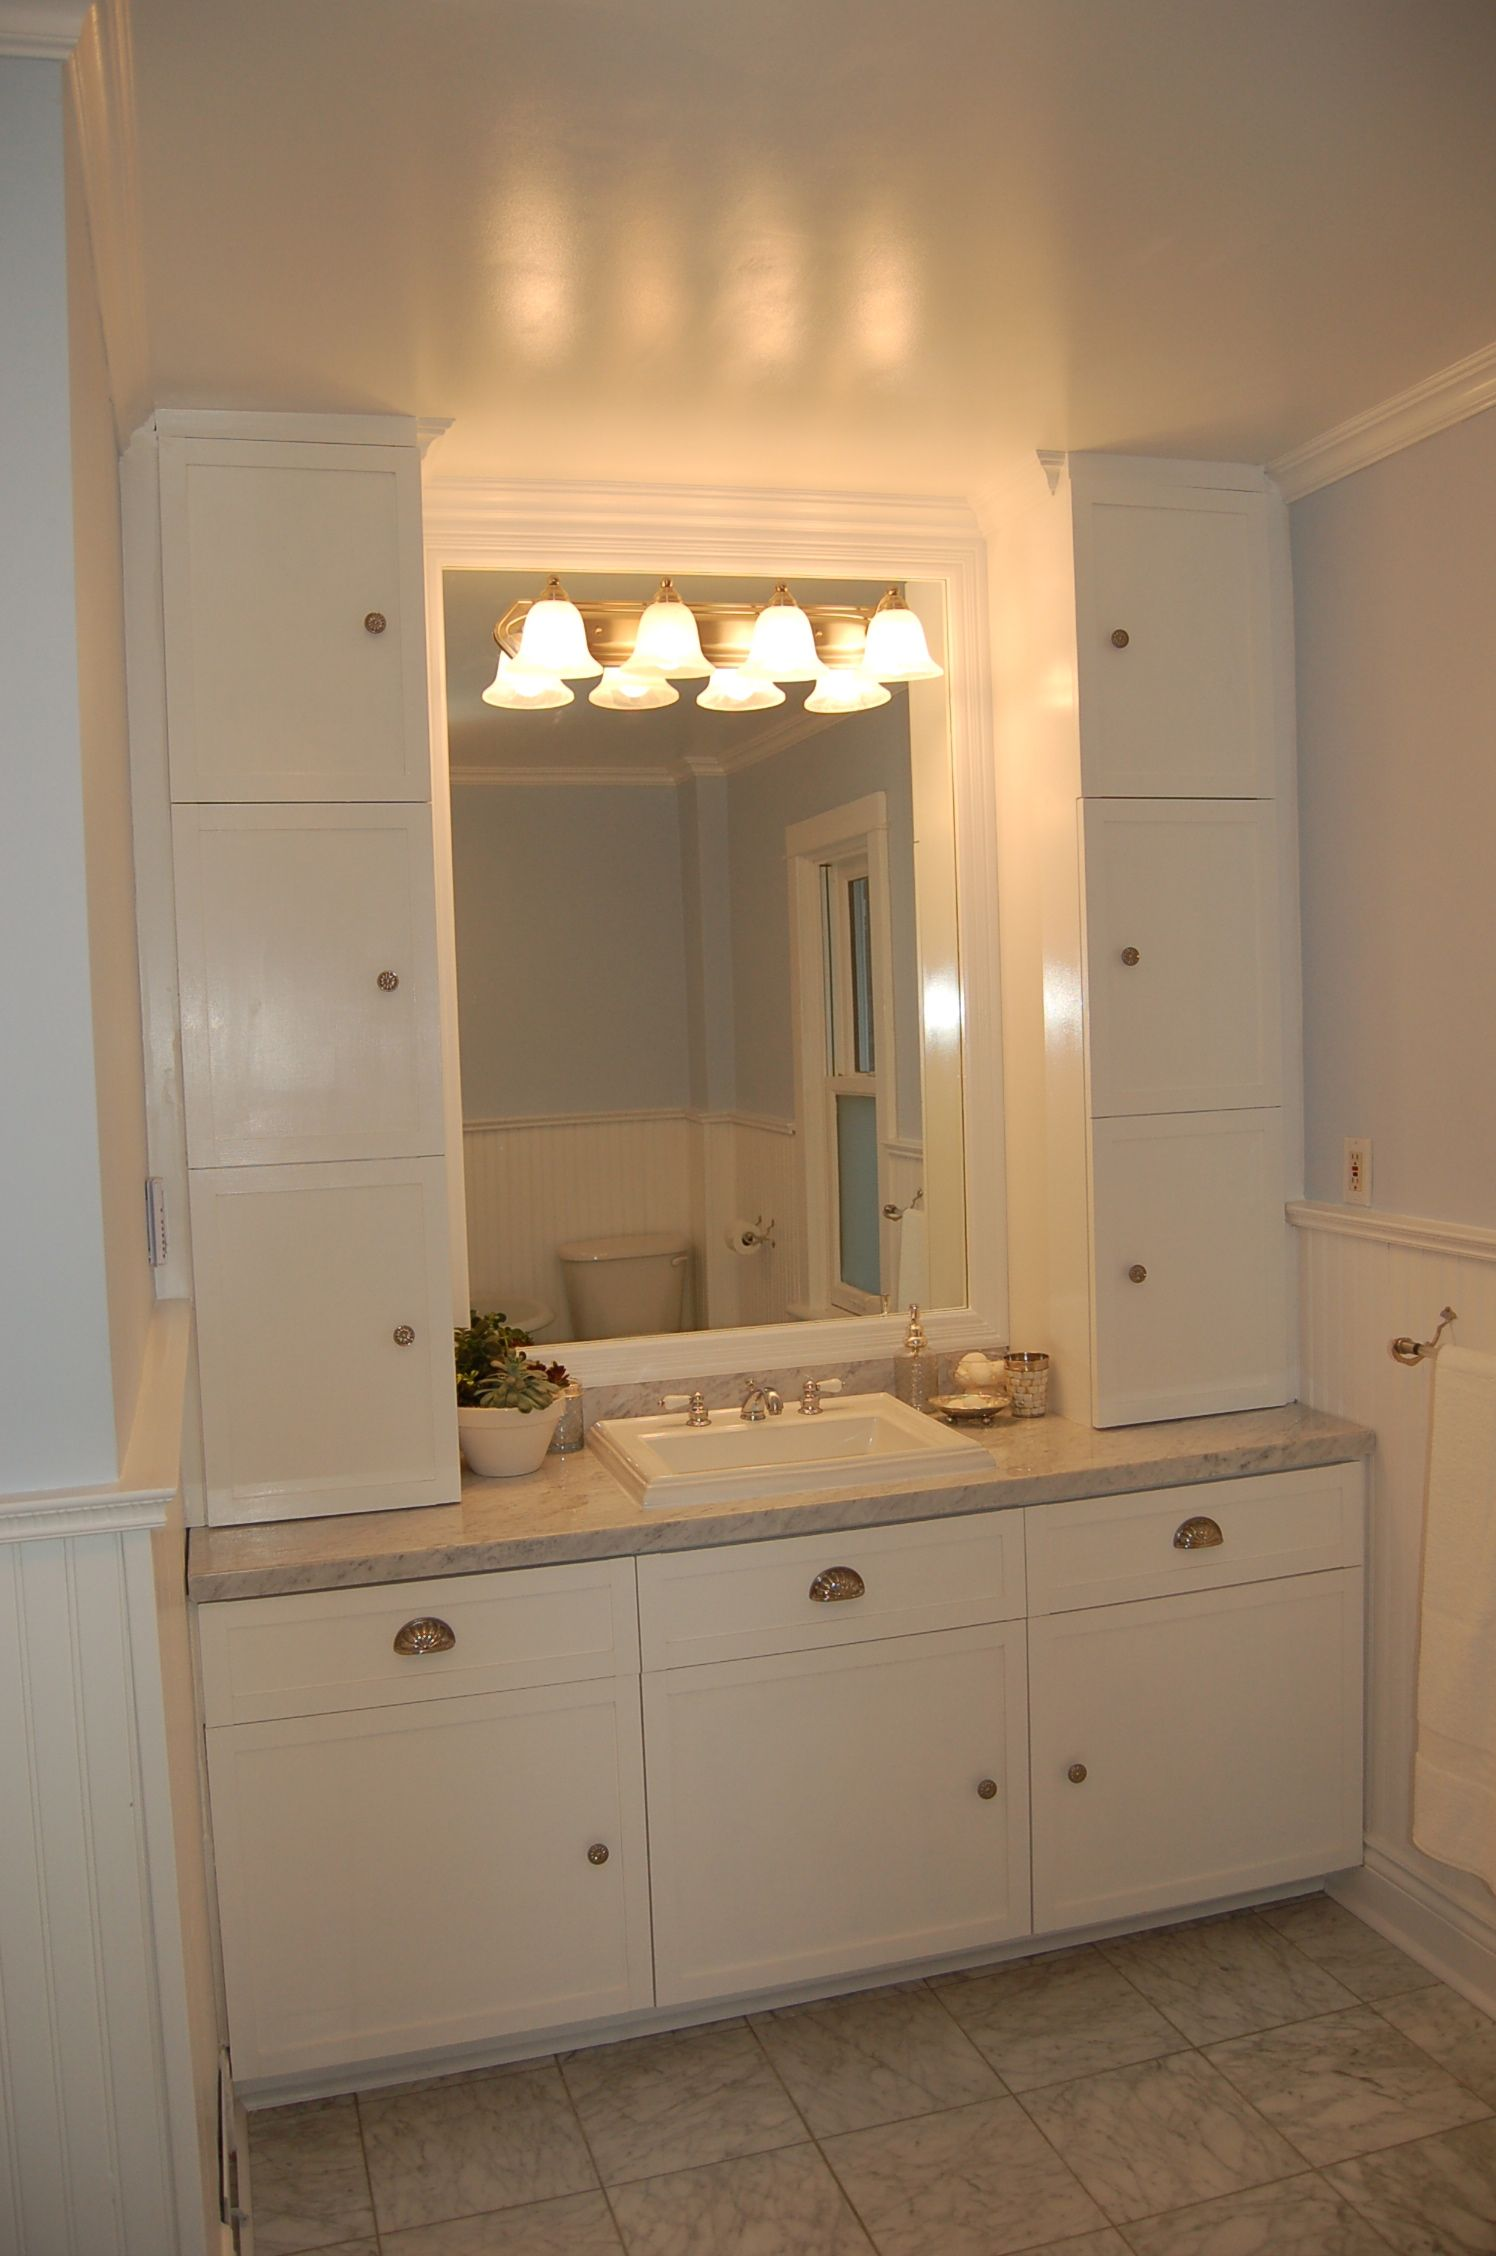 Perfect 10 Design Victorian Style With Modern Storage Large